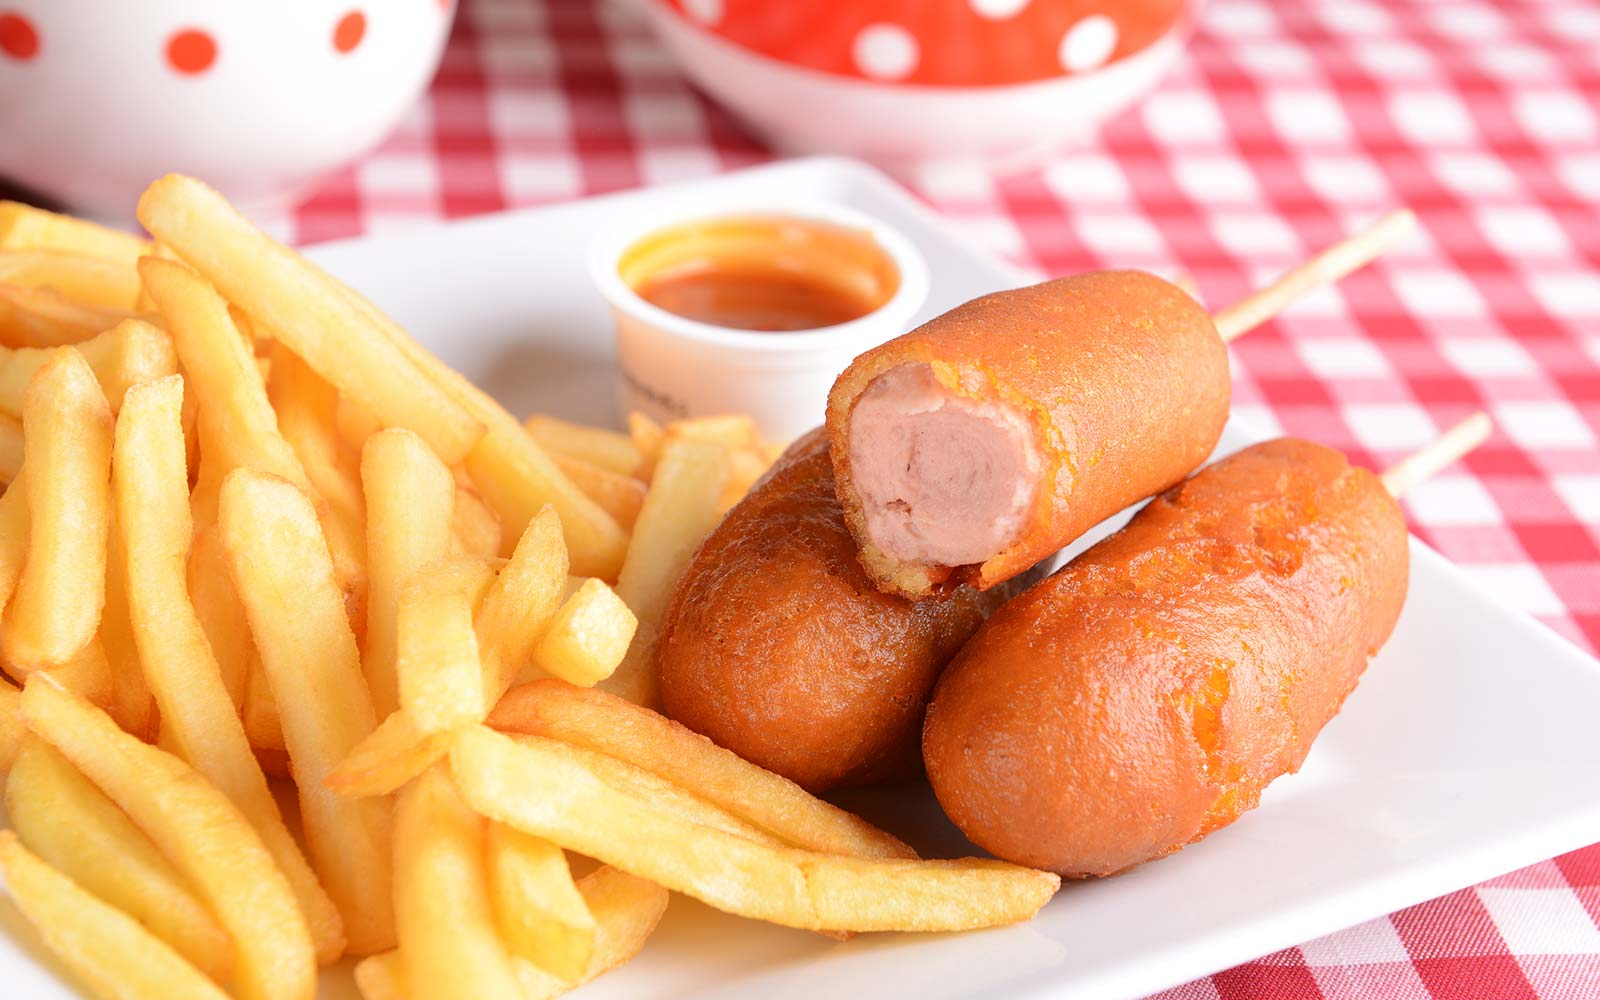 How to Make Disneyland's Famous Corn Dogs at Home